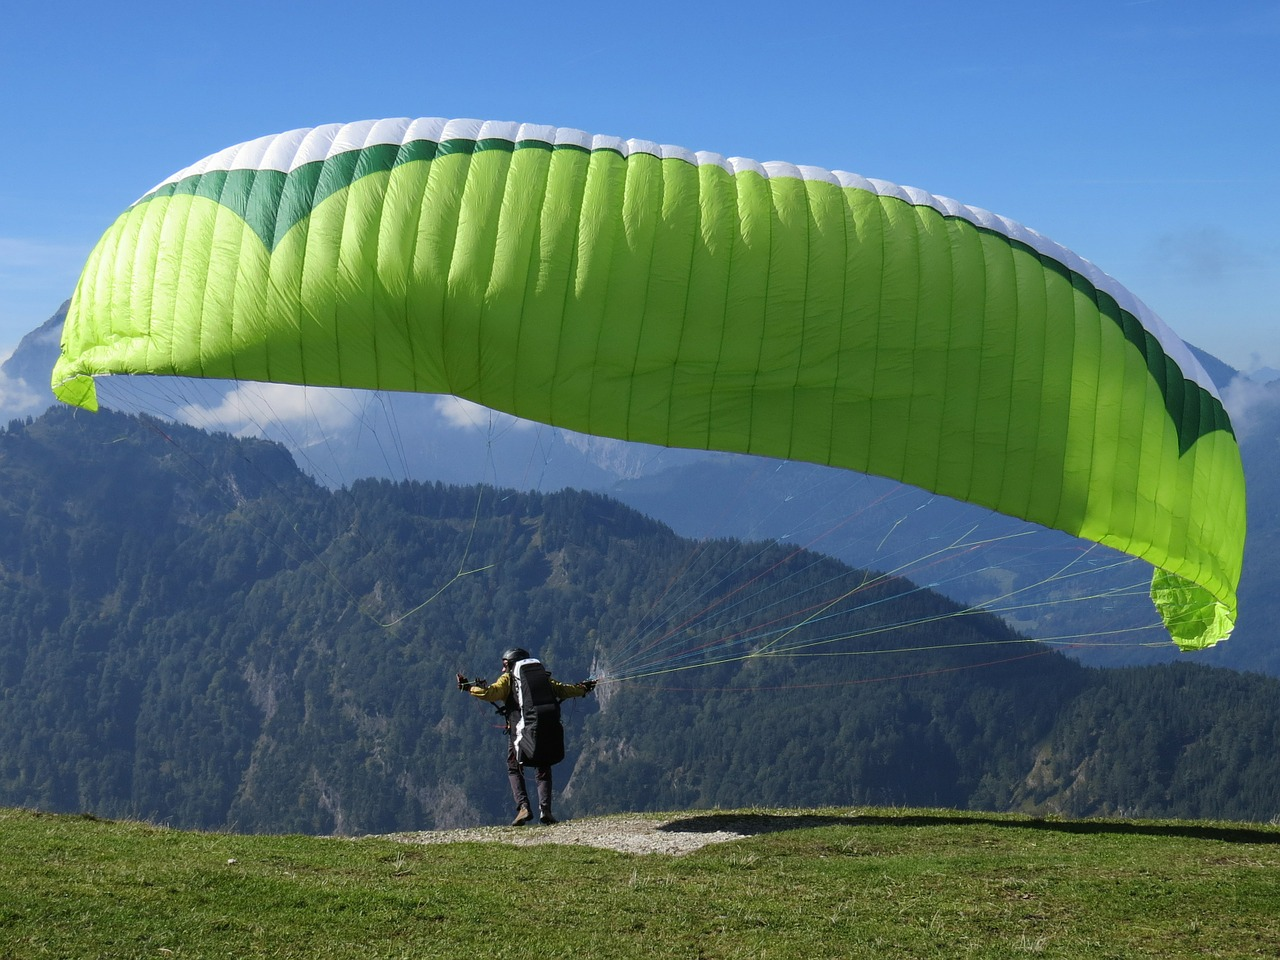 Sports spoit eyecatch paragliding rule